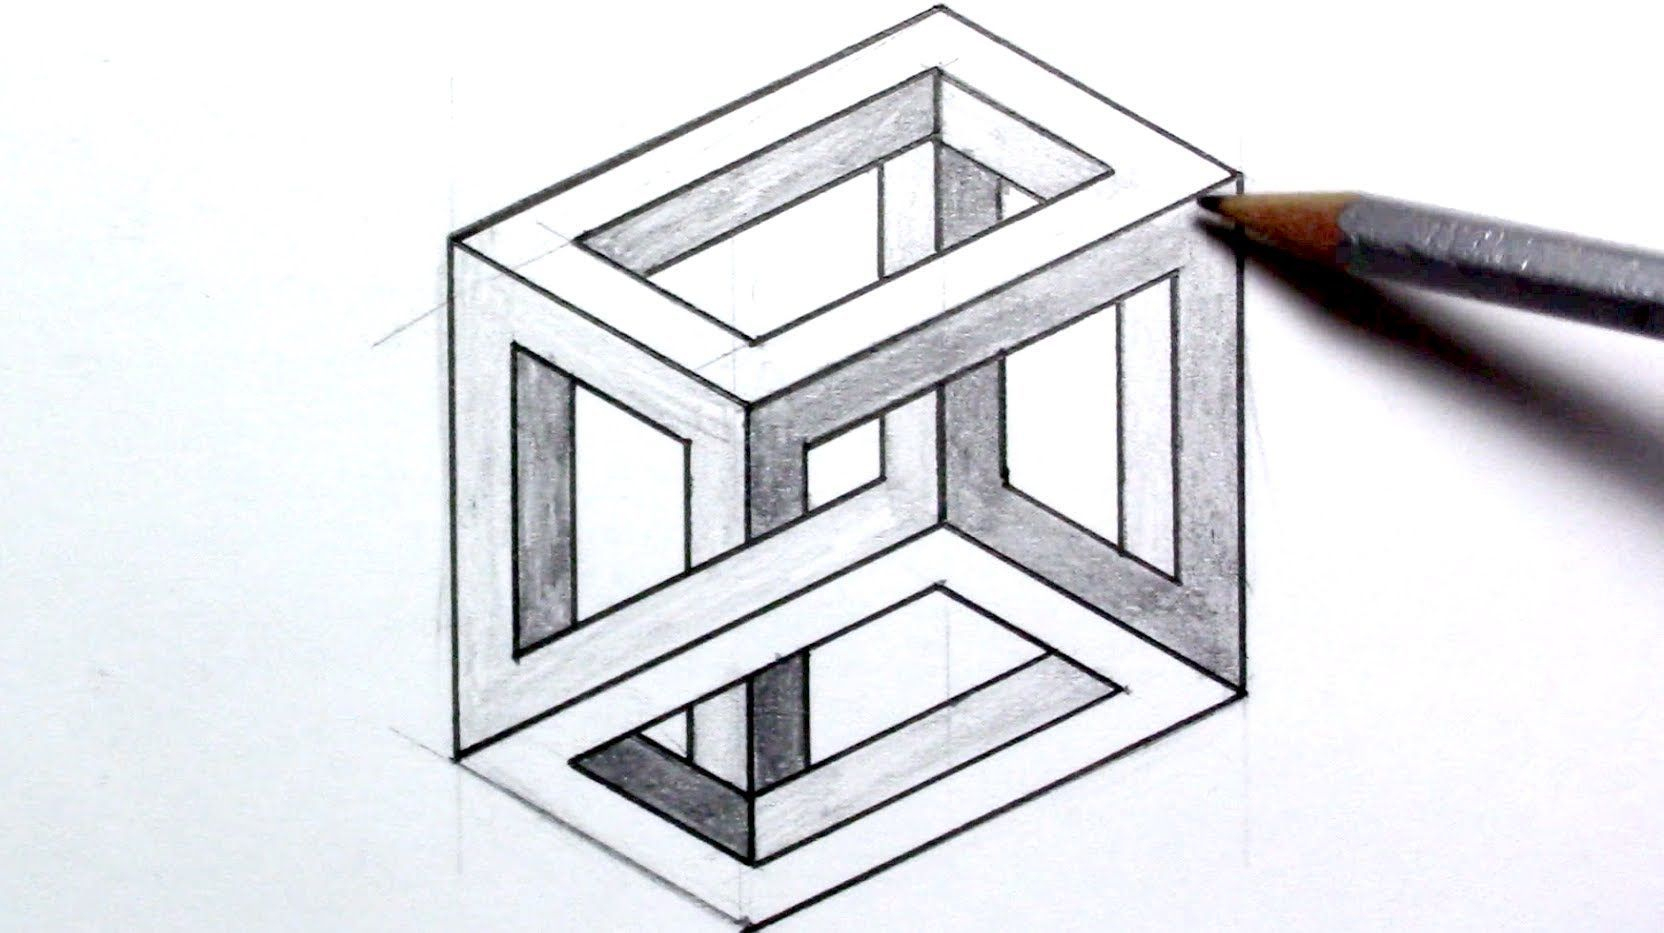 3D Illusion Drawing Easy How To Draw An Optical Illusion mit 3D Würfel Zeichnen